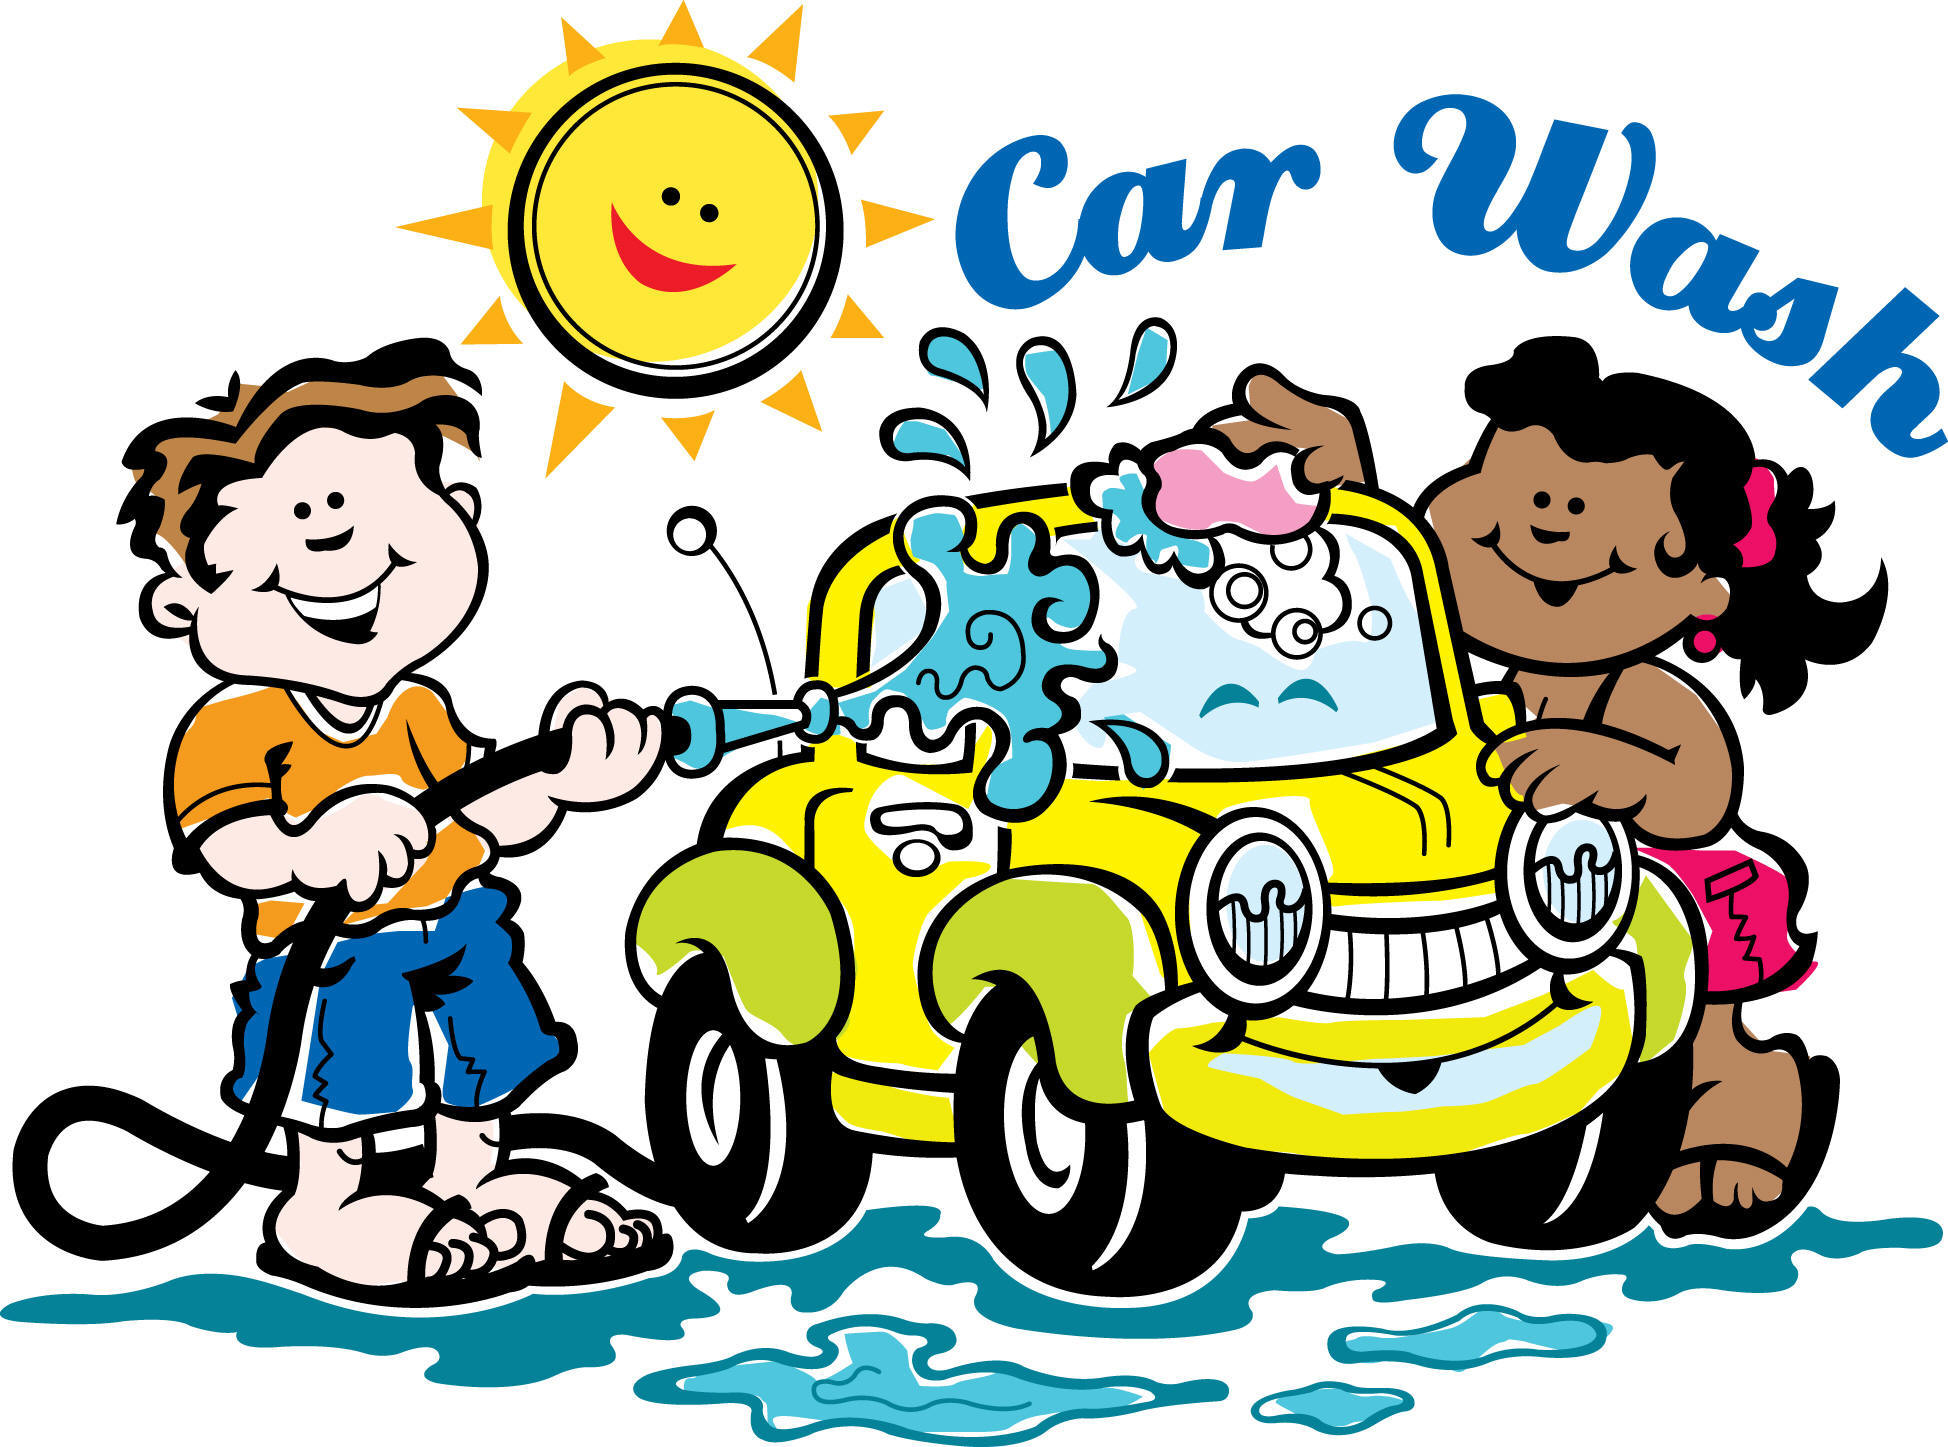 Tomorrow After School Free The Children Will Be Hosting A Car Wash